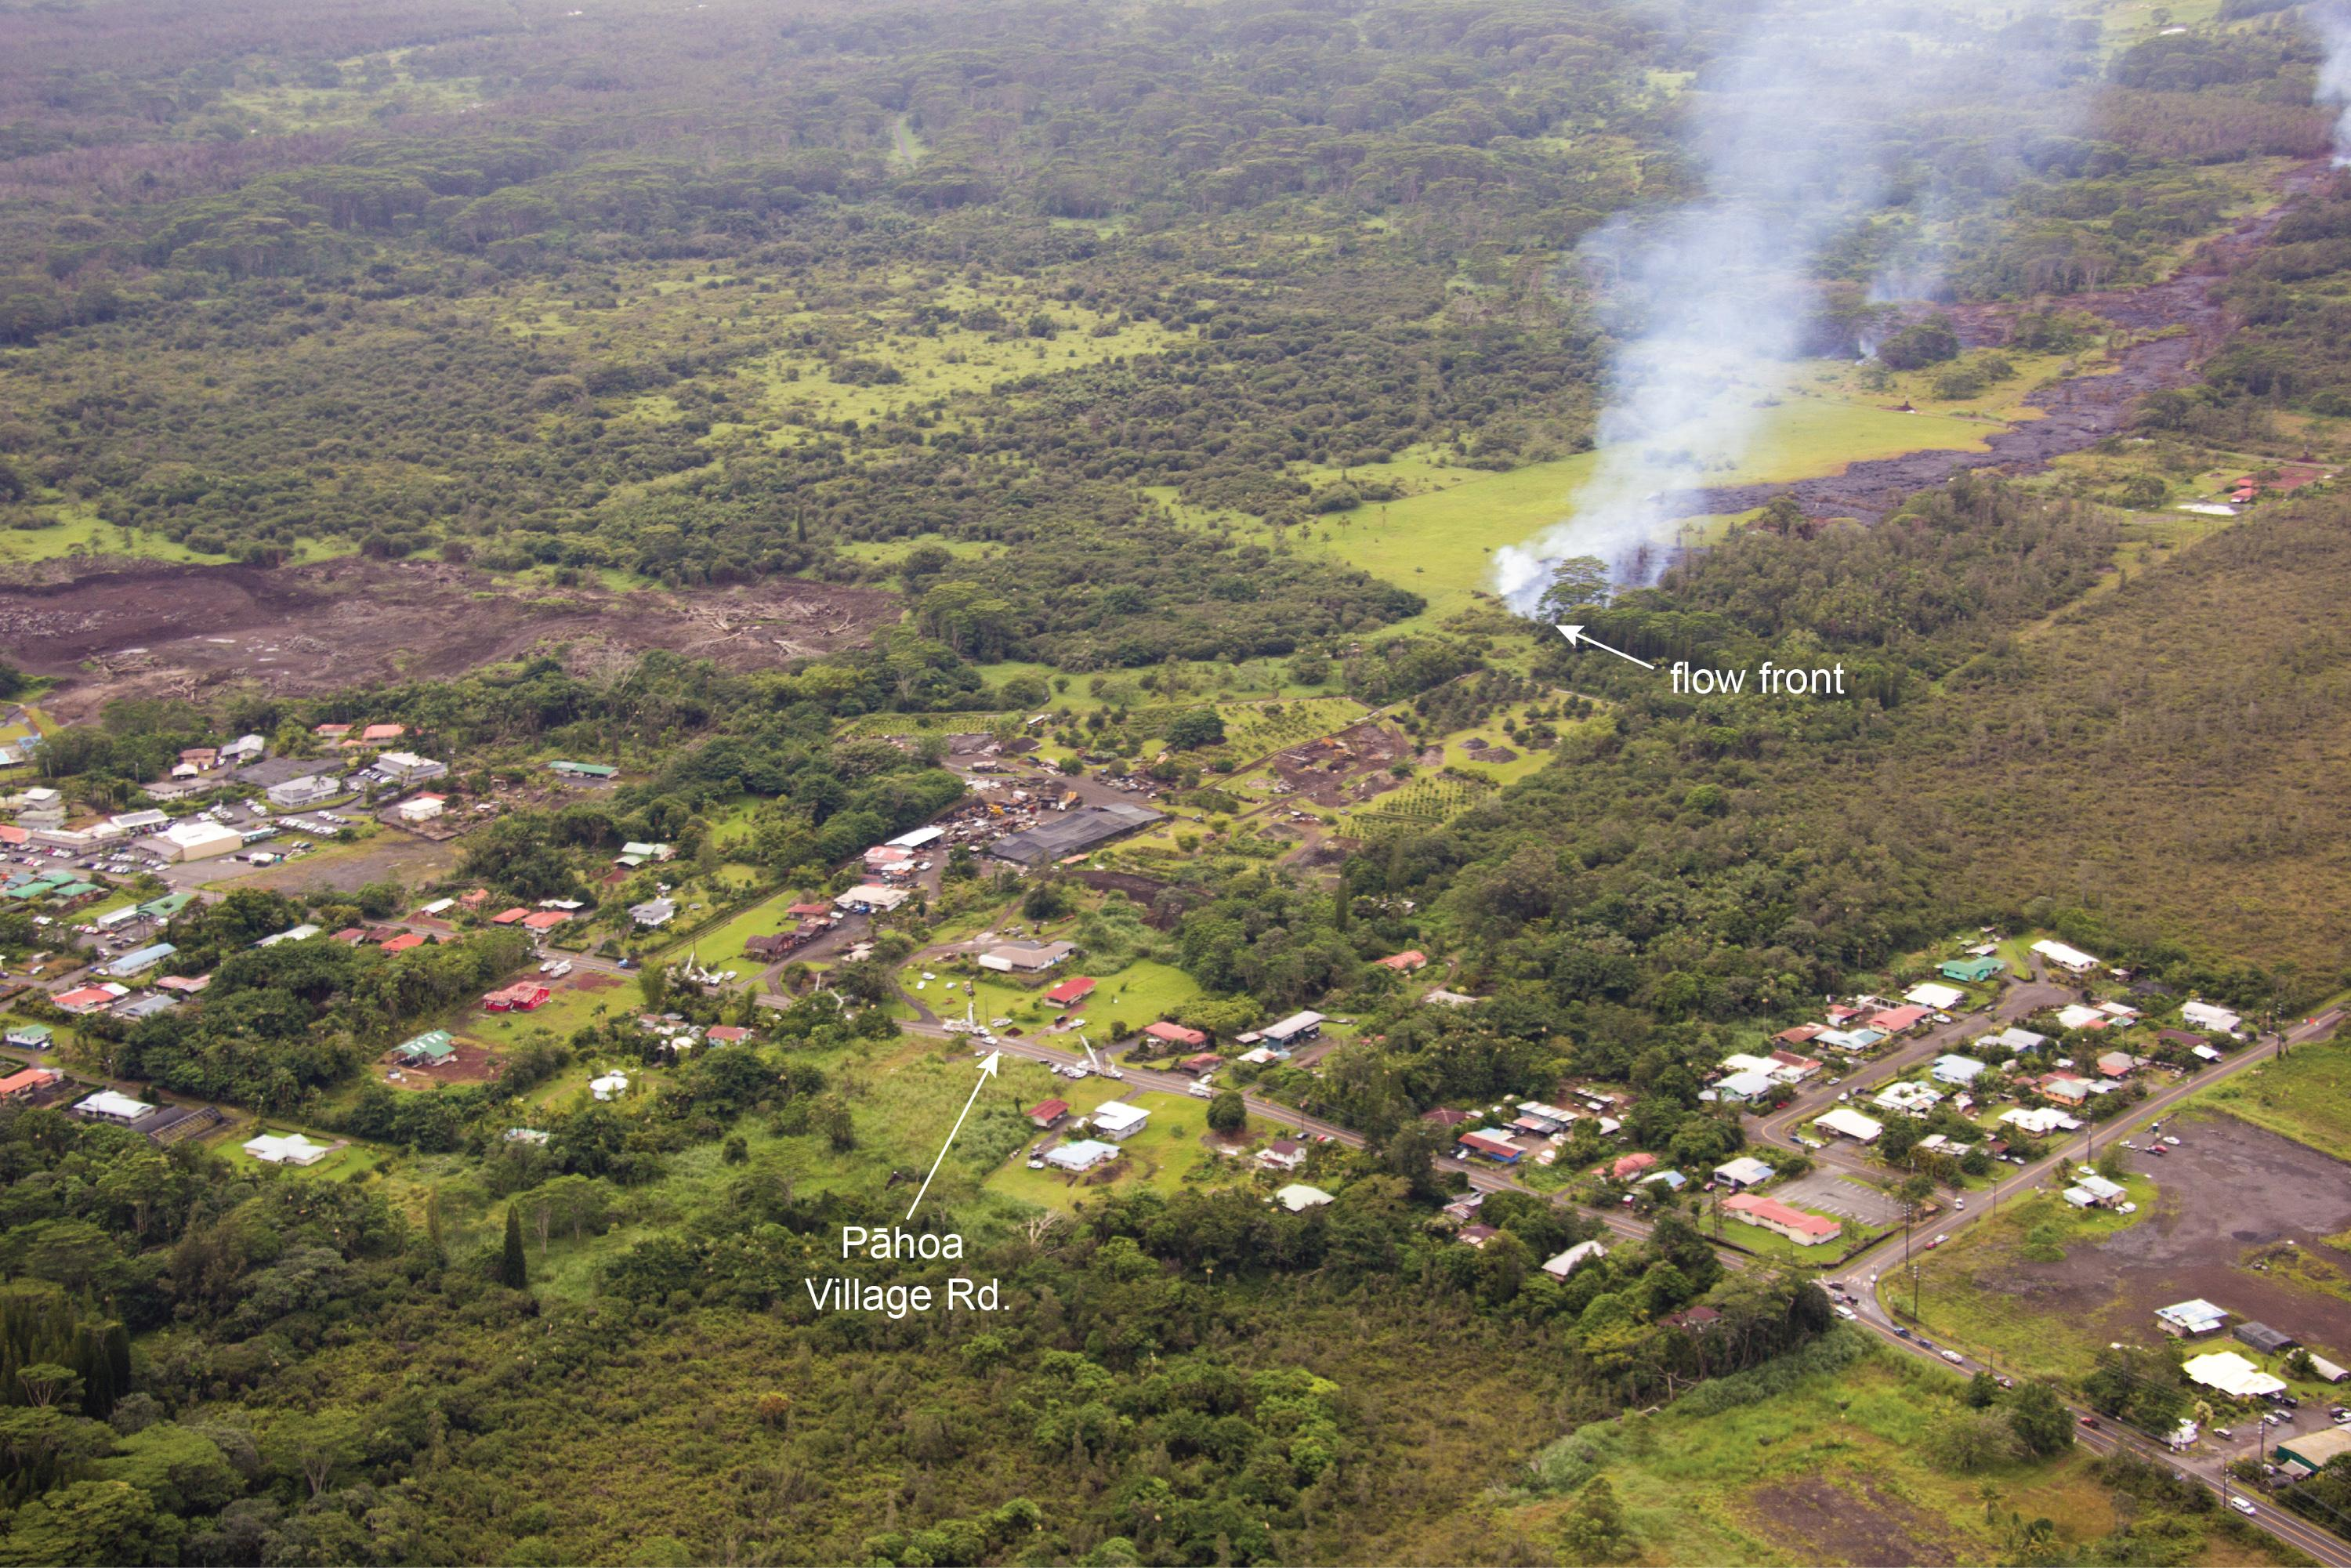 Kilauea Update: Hawaii Lava Flow Complicates Volcano Tourism